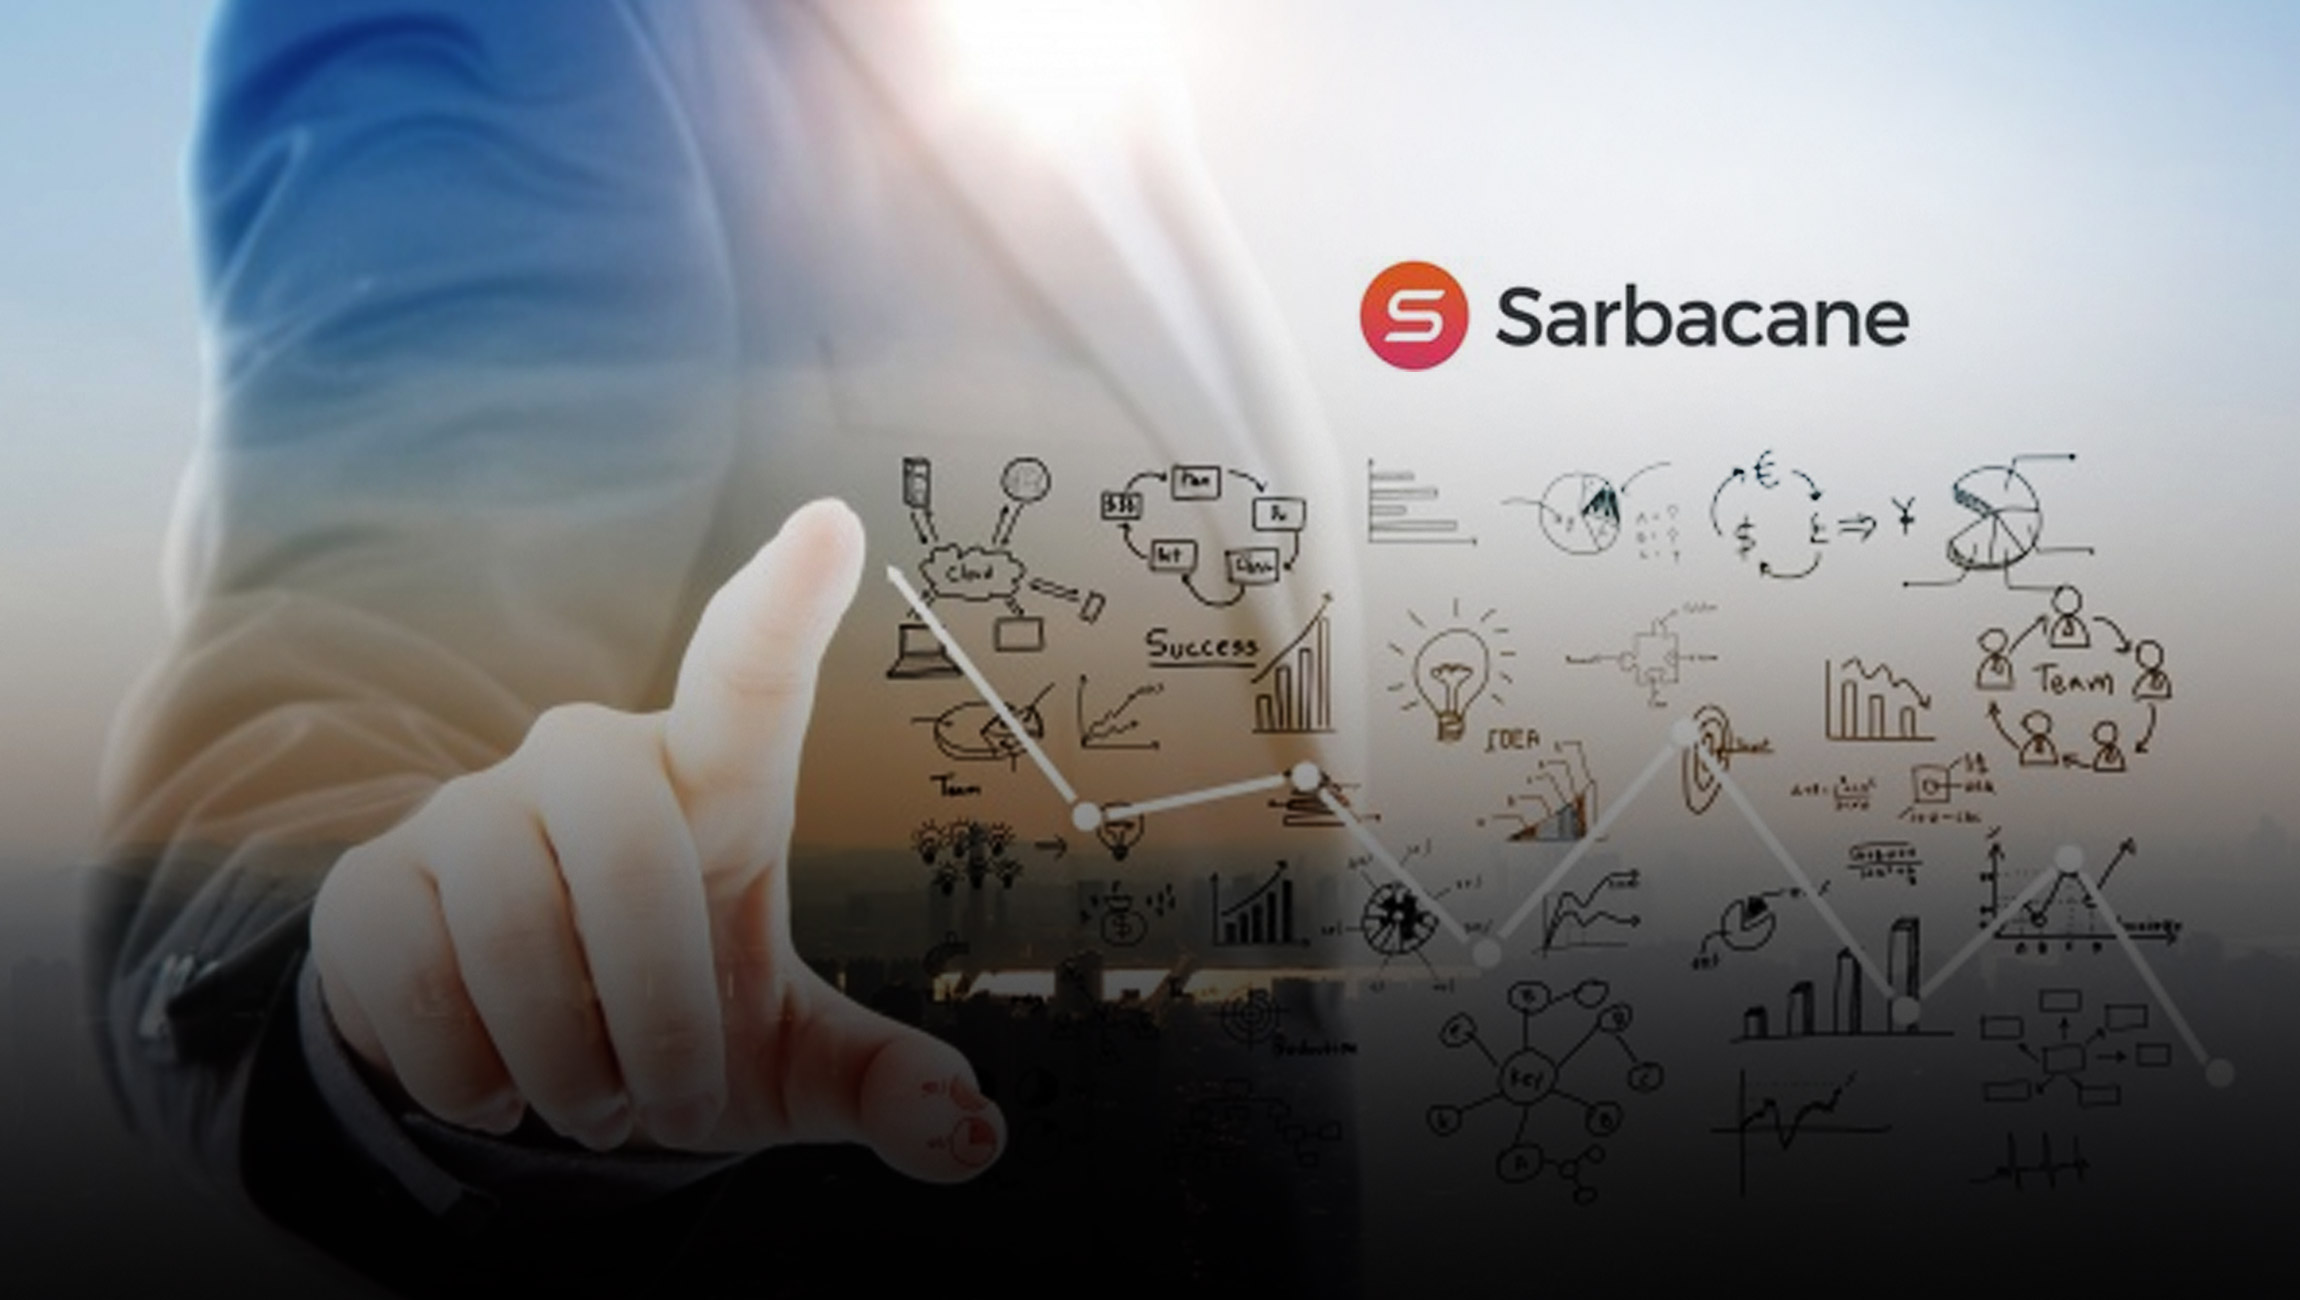 Sarbacane Group, Mailify's Parent Company, Raises $27m and Takes on a New Dimension in the Digital Marketing Segment